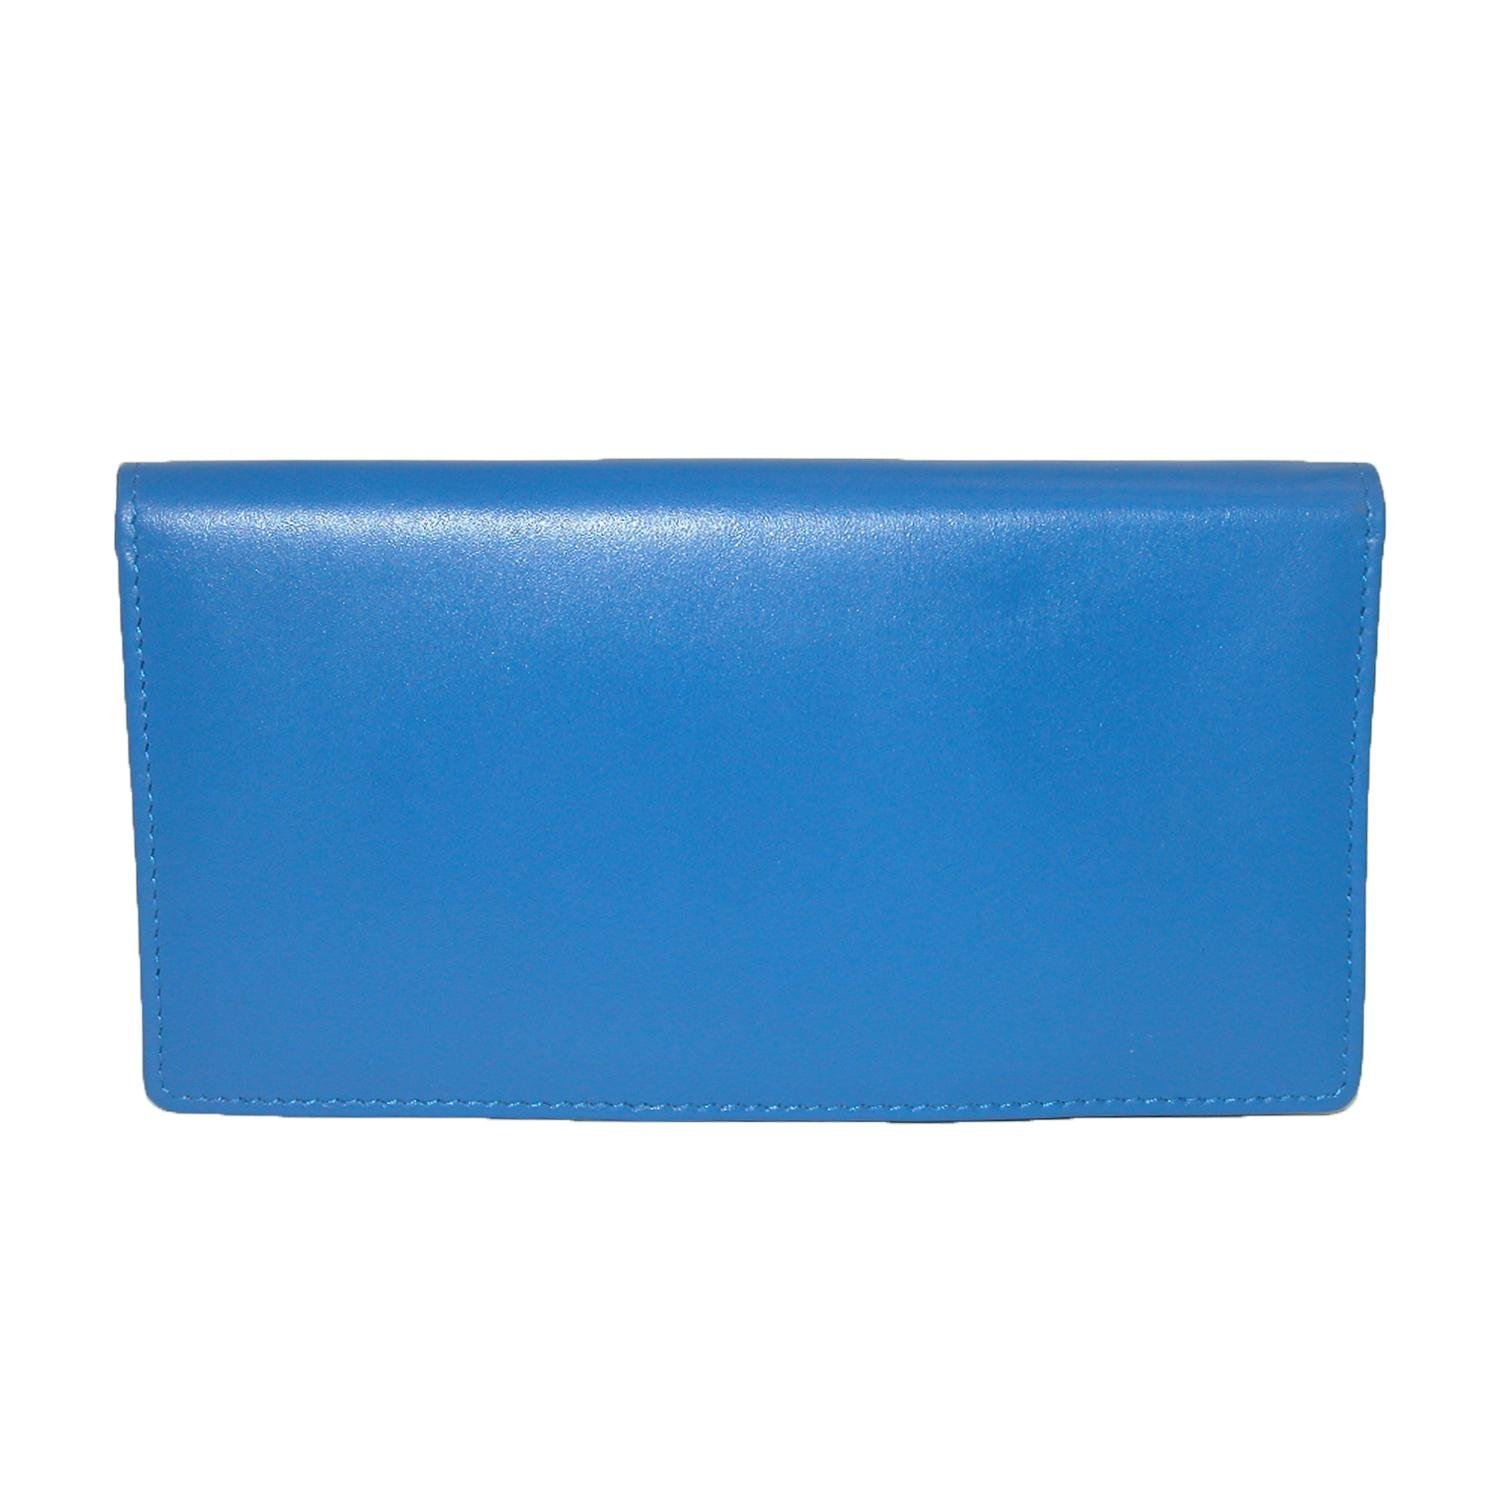 CTM Women's Leather Basic Checkbook Cover in Fashion Colors, Blue